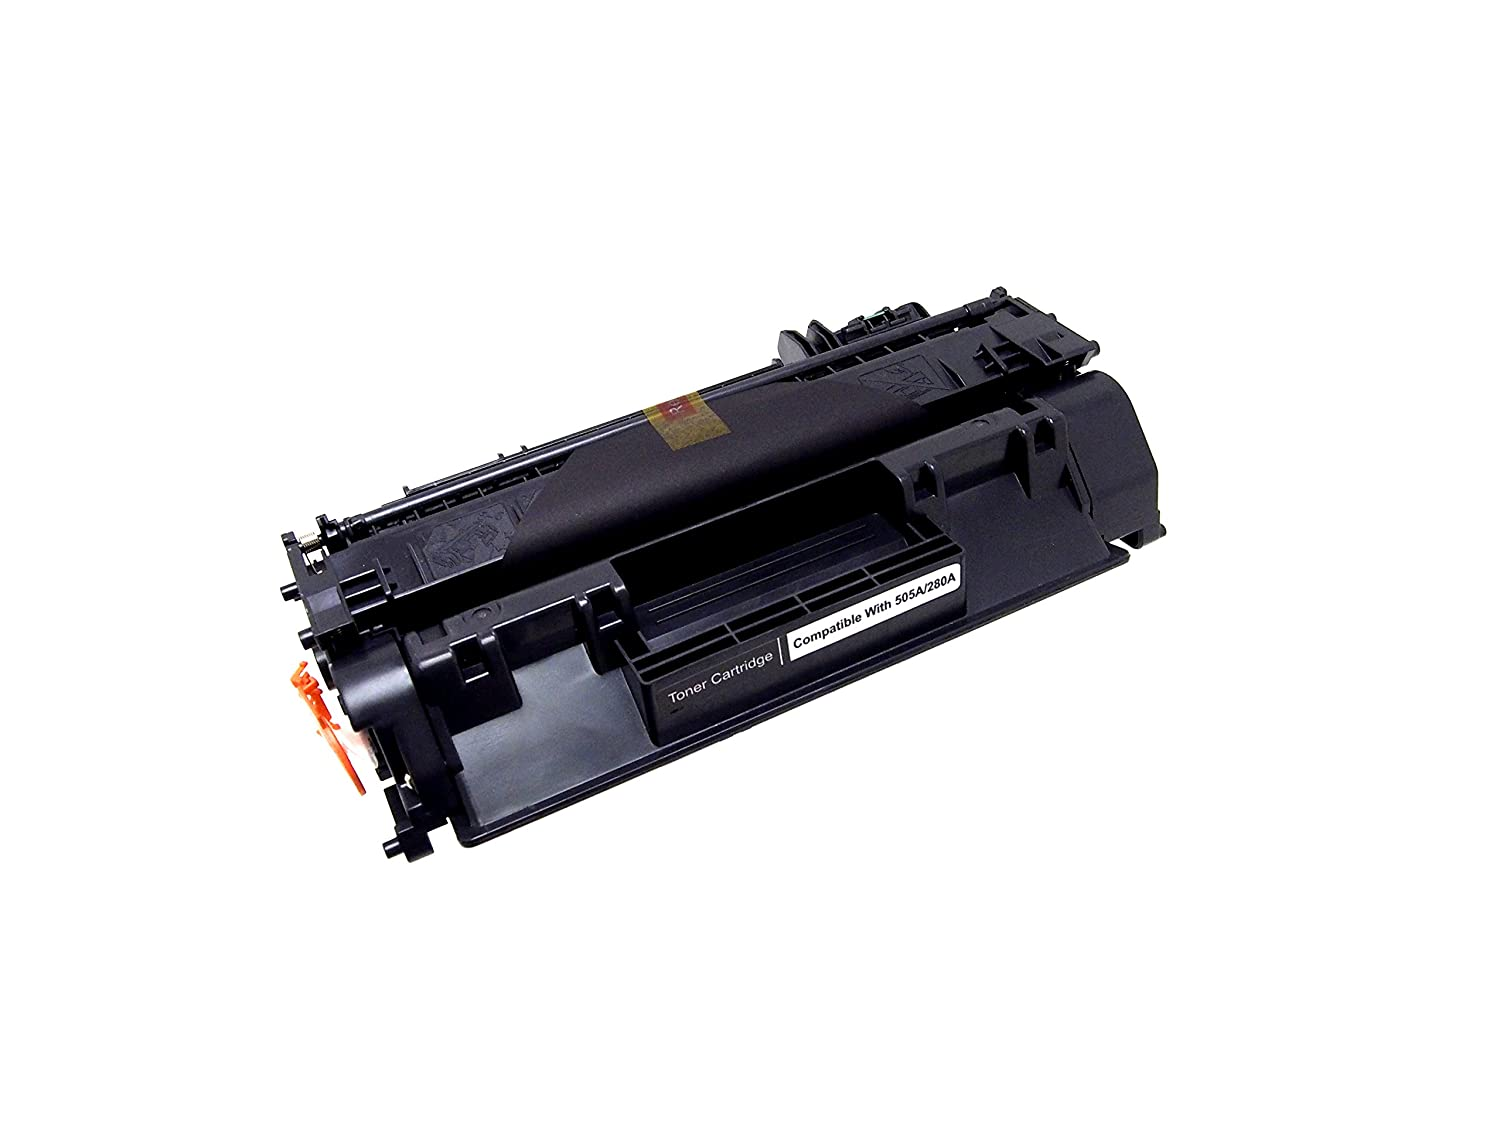 Primetonertm Cf280a 80a Ce505a 05a Canon 119 1 I Black Toner Block Diagram Hplaserjetp2035p2055 Cartridge For Hp Compatible With P2035 P2055 Imageclass Mf5950dw Mf6160dw